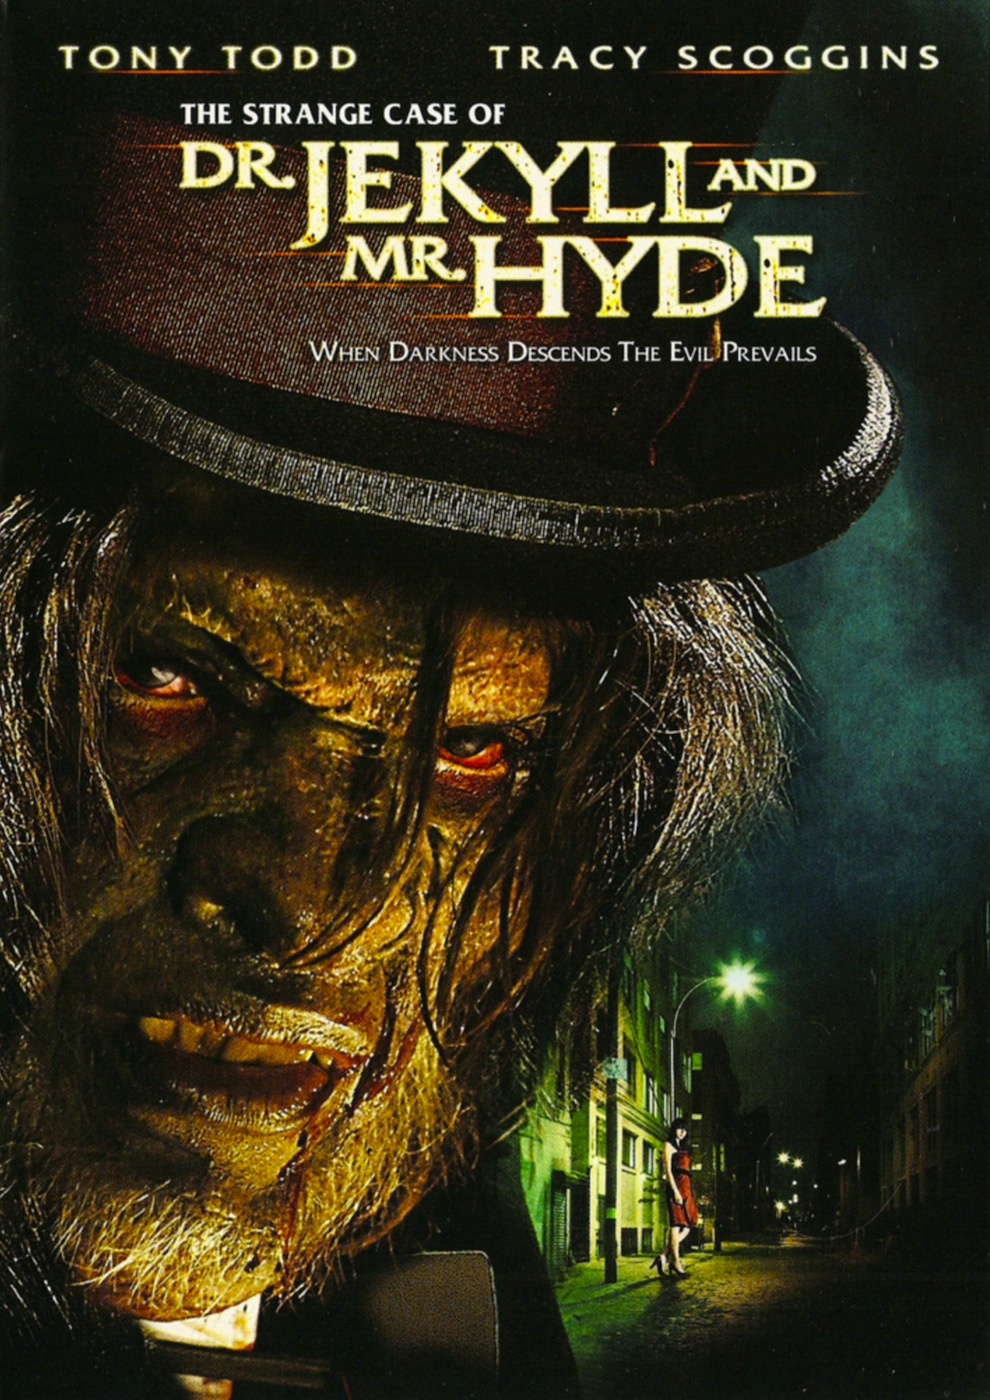 A study in dualism: The strange case of Dr. Jekyll and Mr. Hyde